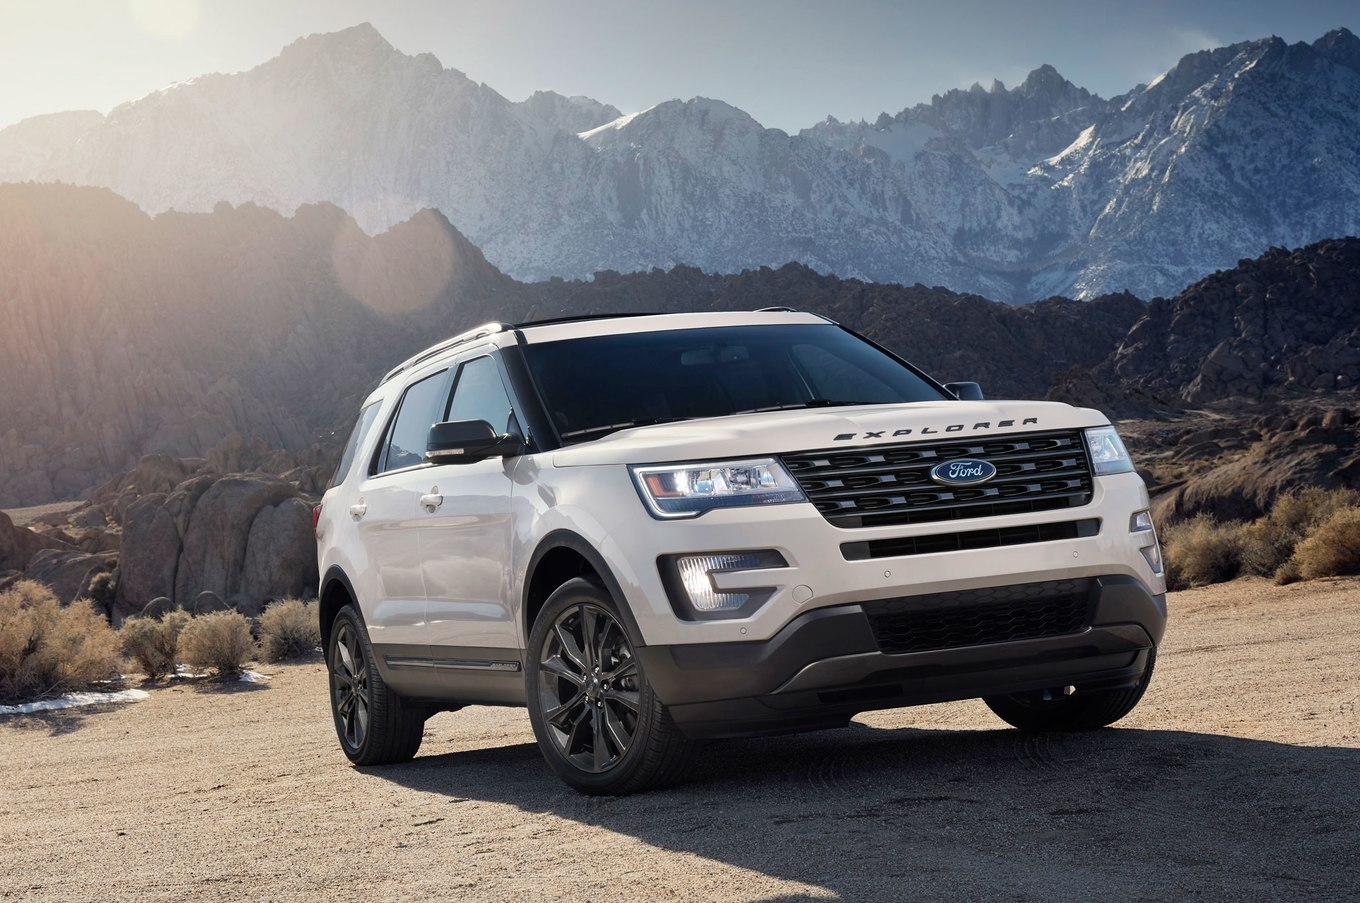 Ford xlt photo - 8